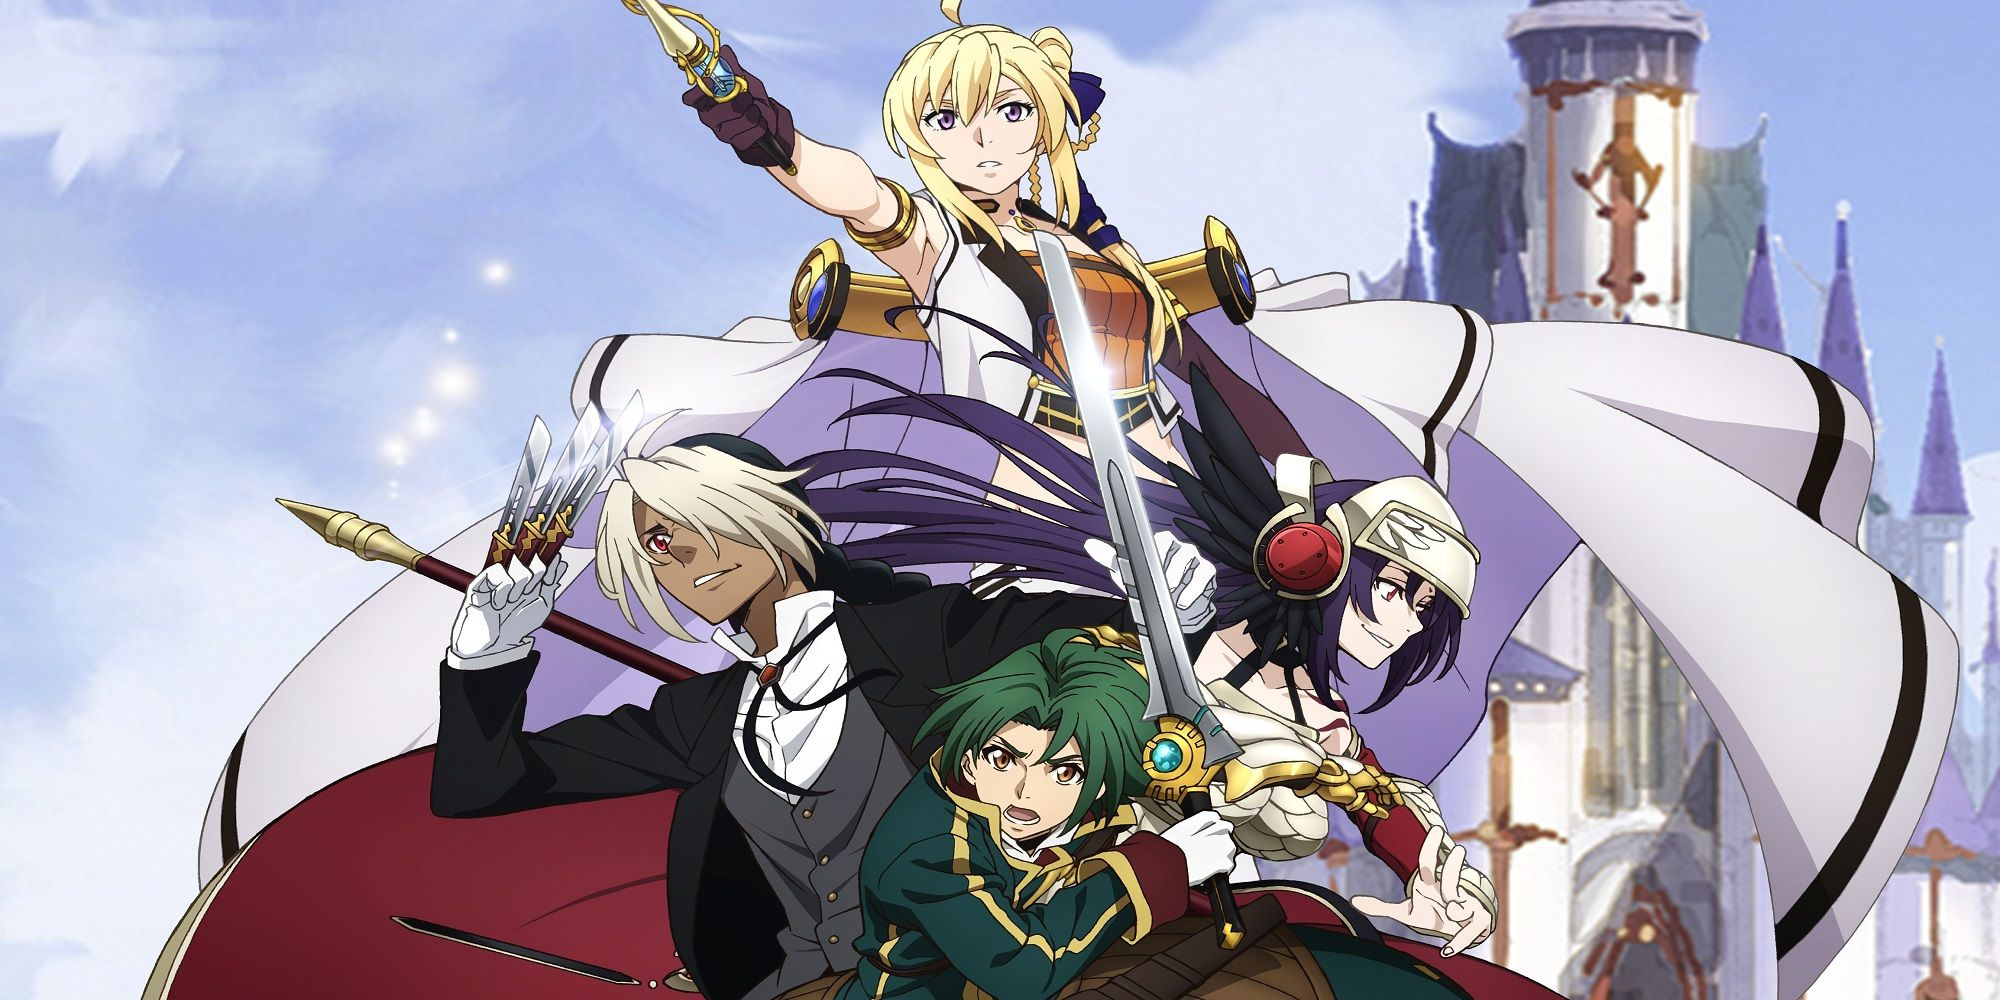 10 Things Anime Fans Need To Know About Record Of Grancrest War